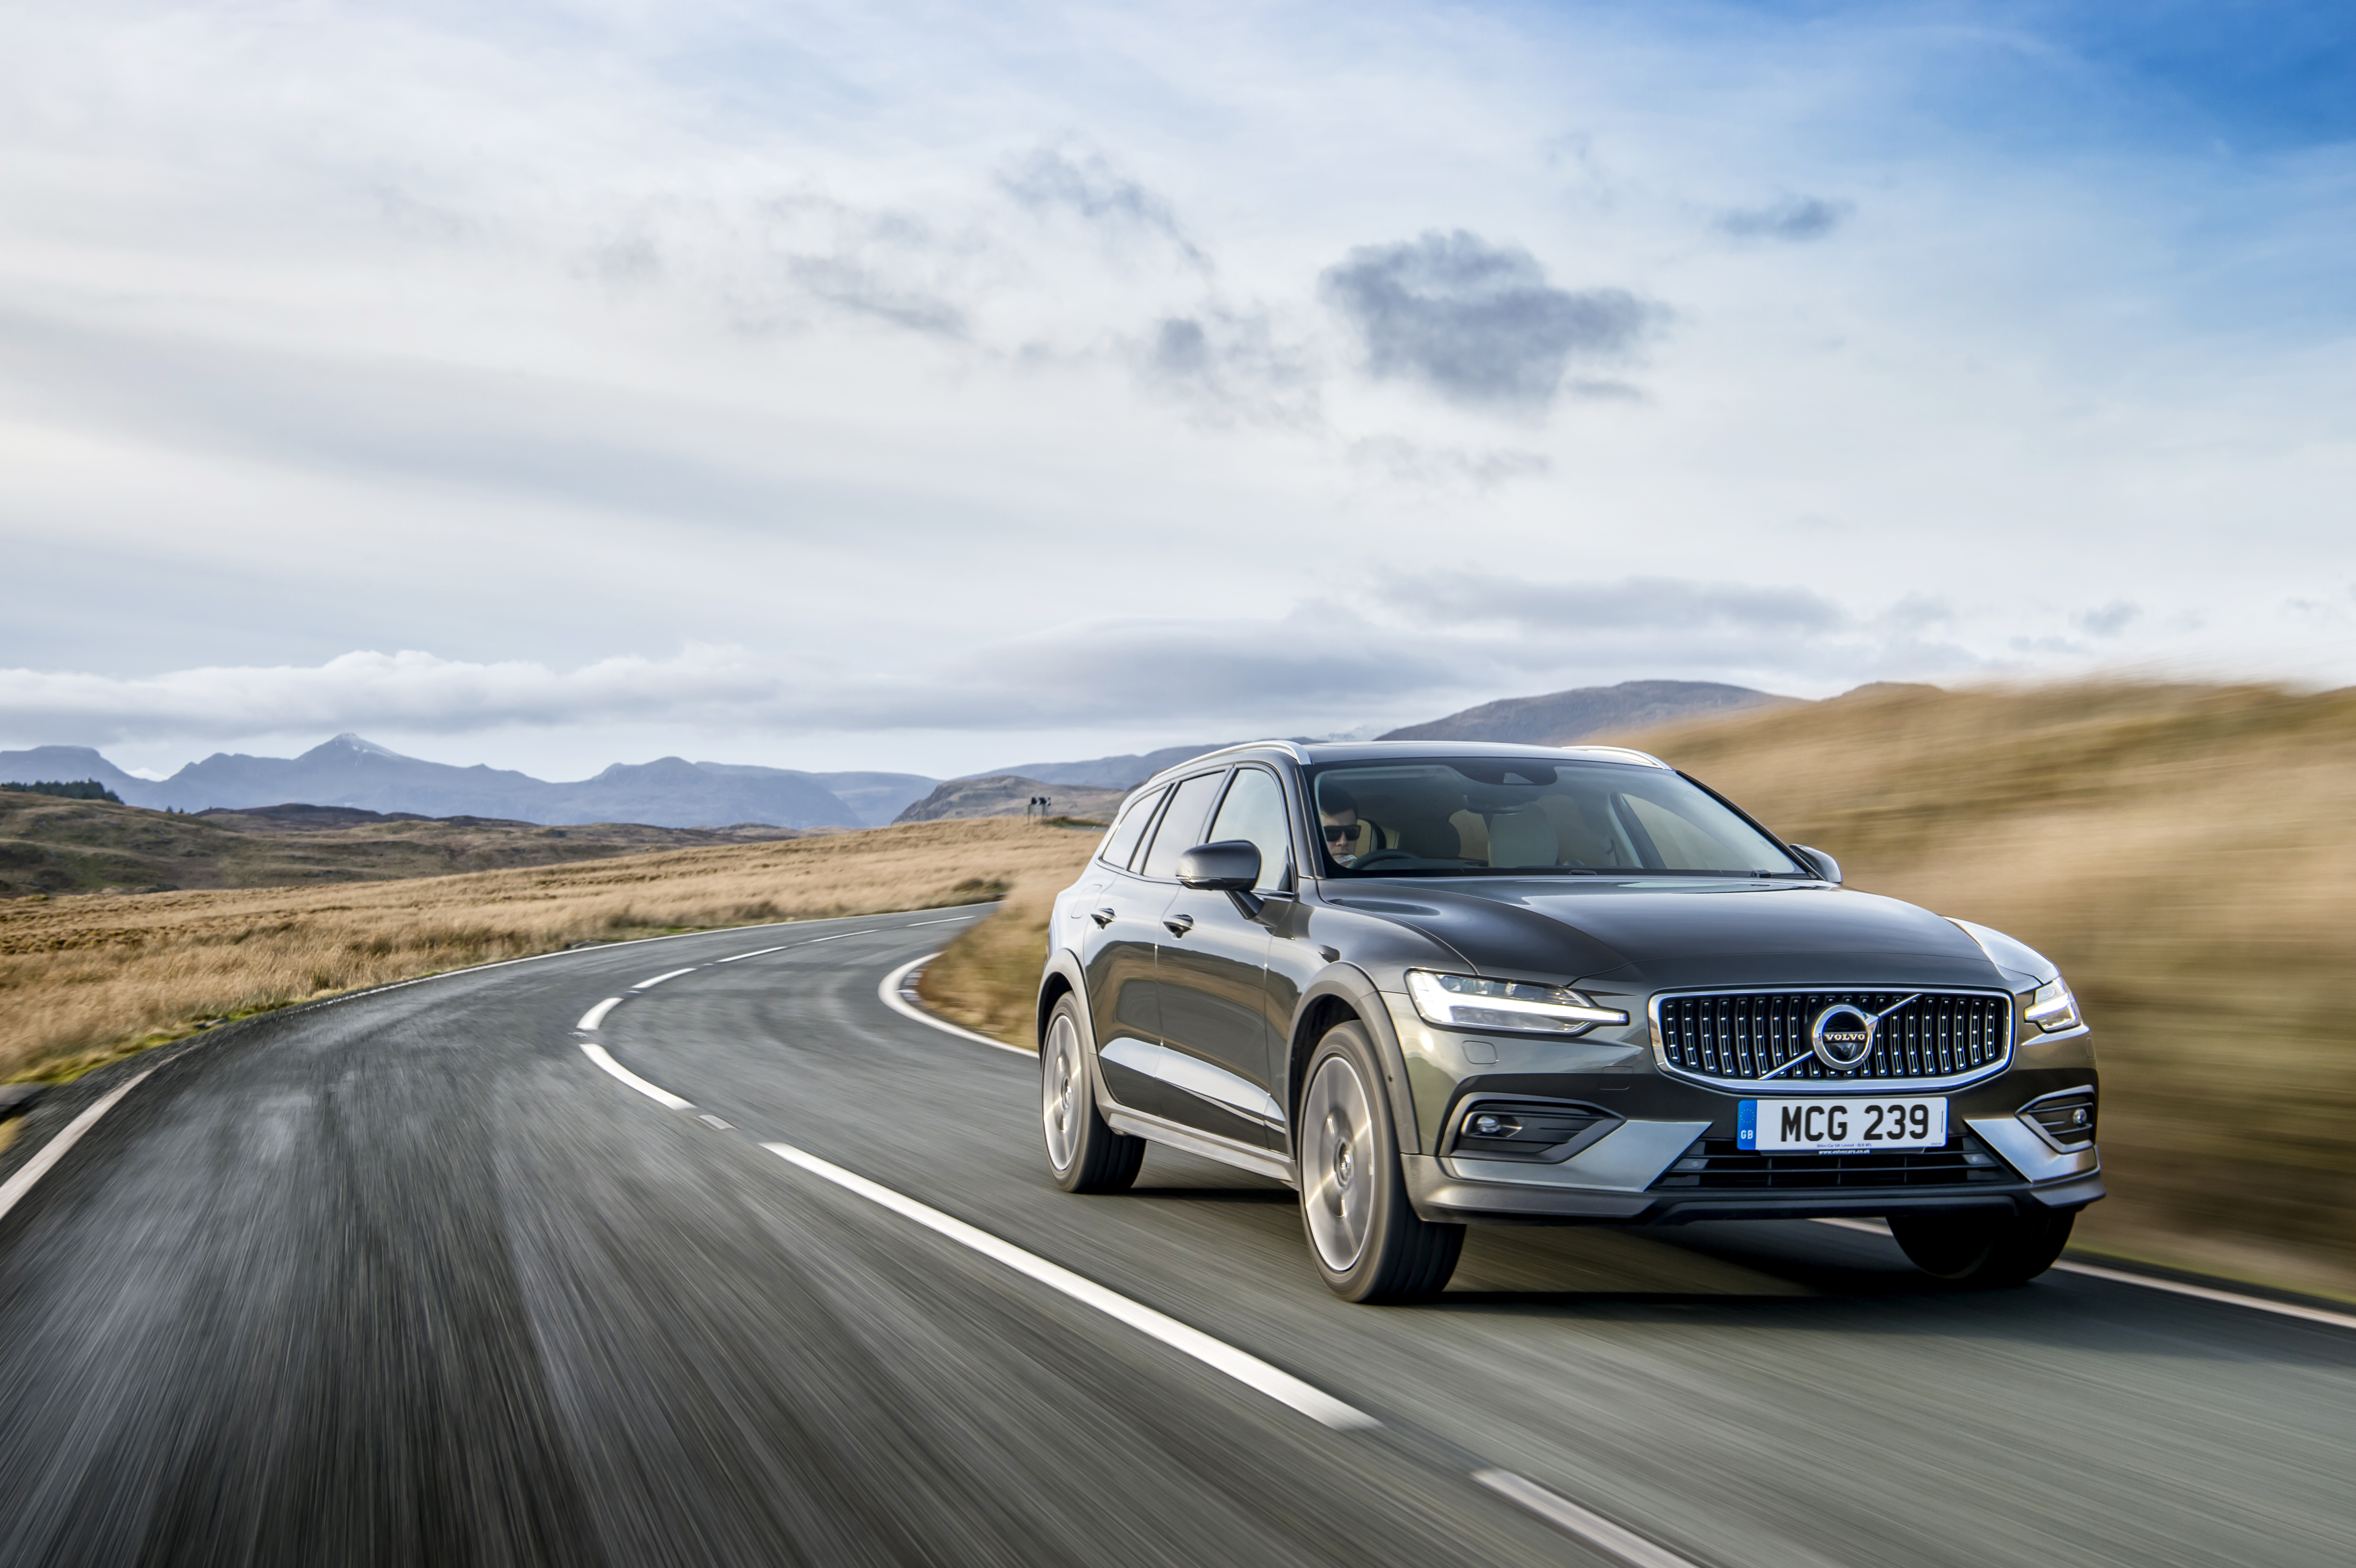 Volvo V60 Driving on a road